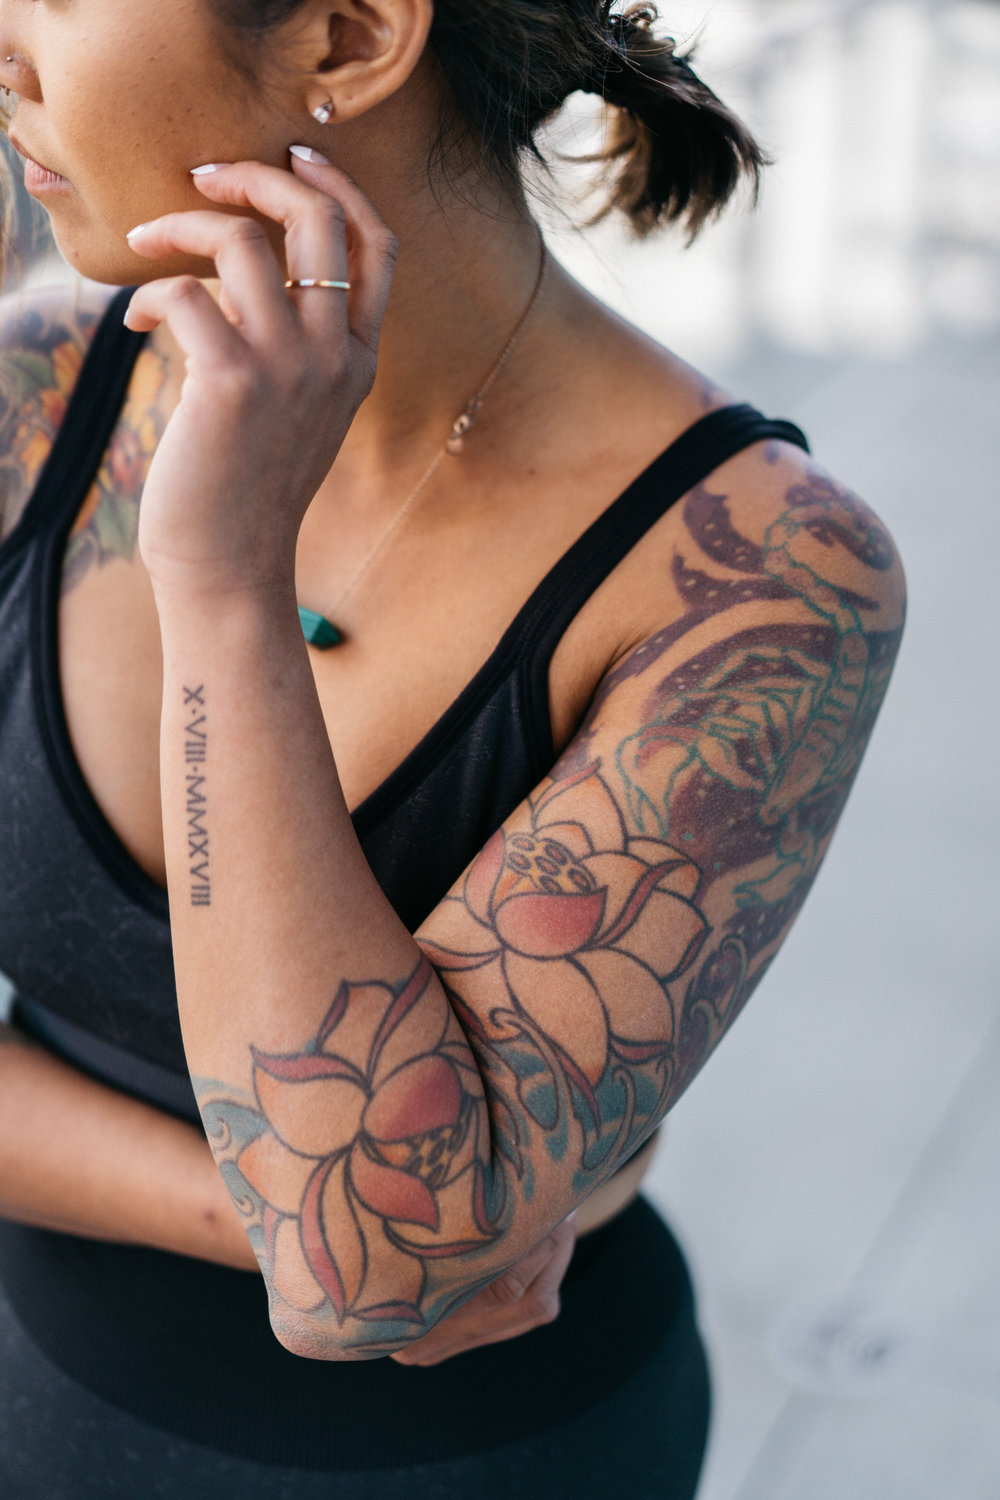 My left sleeve: lotus flowers and water